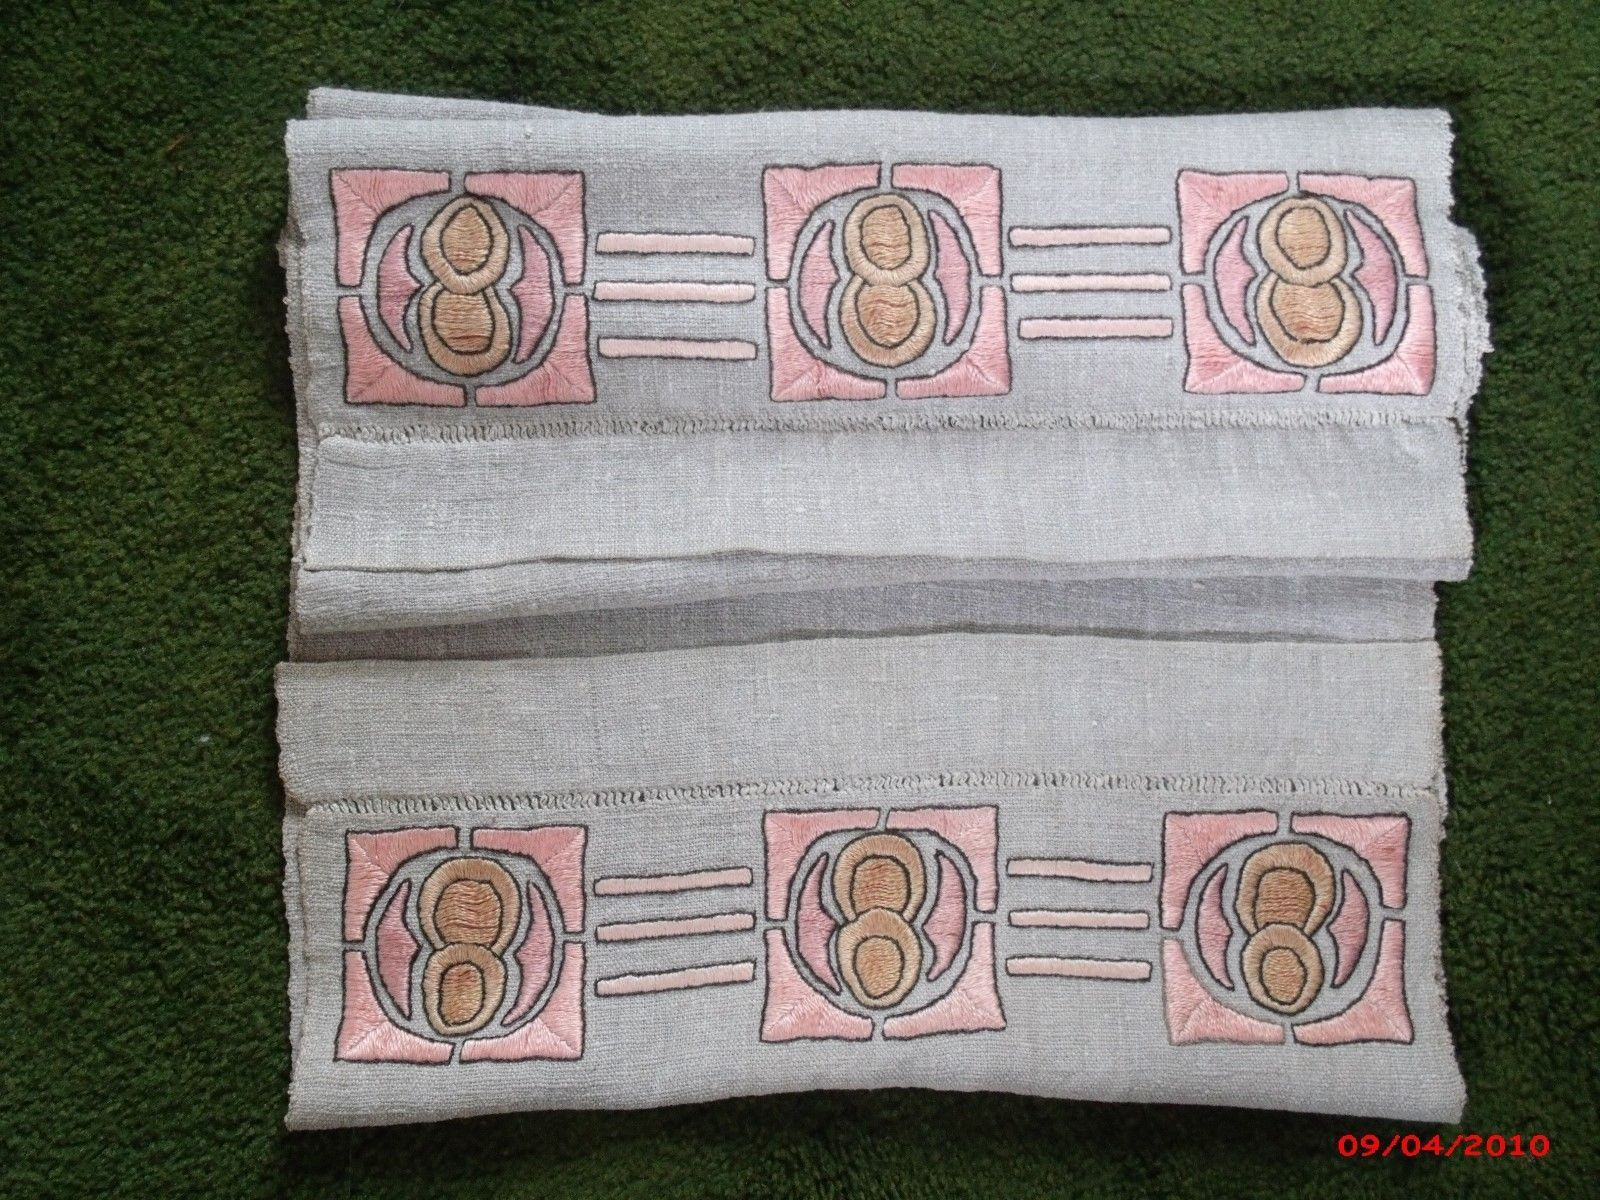 Iconic Arts And Crafts Heavy Linen Embroidered Runner 60 Inches Long